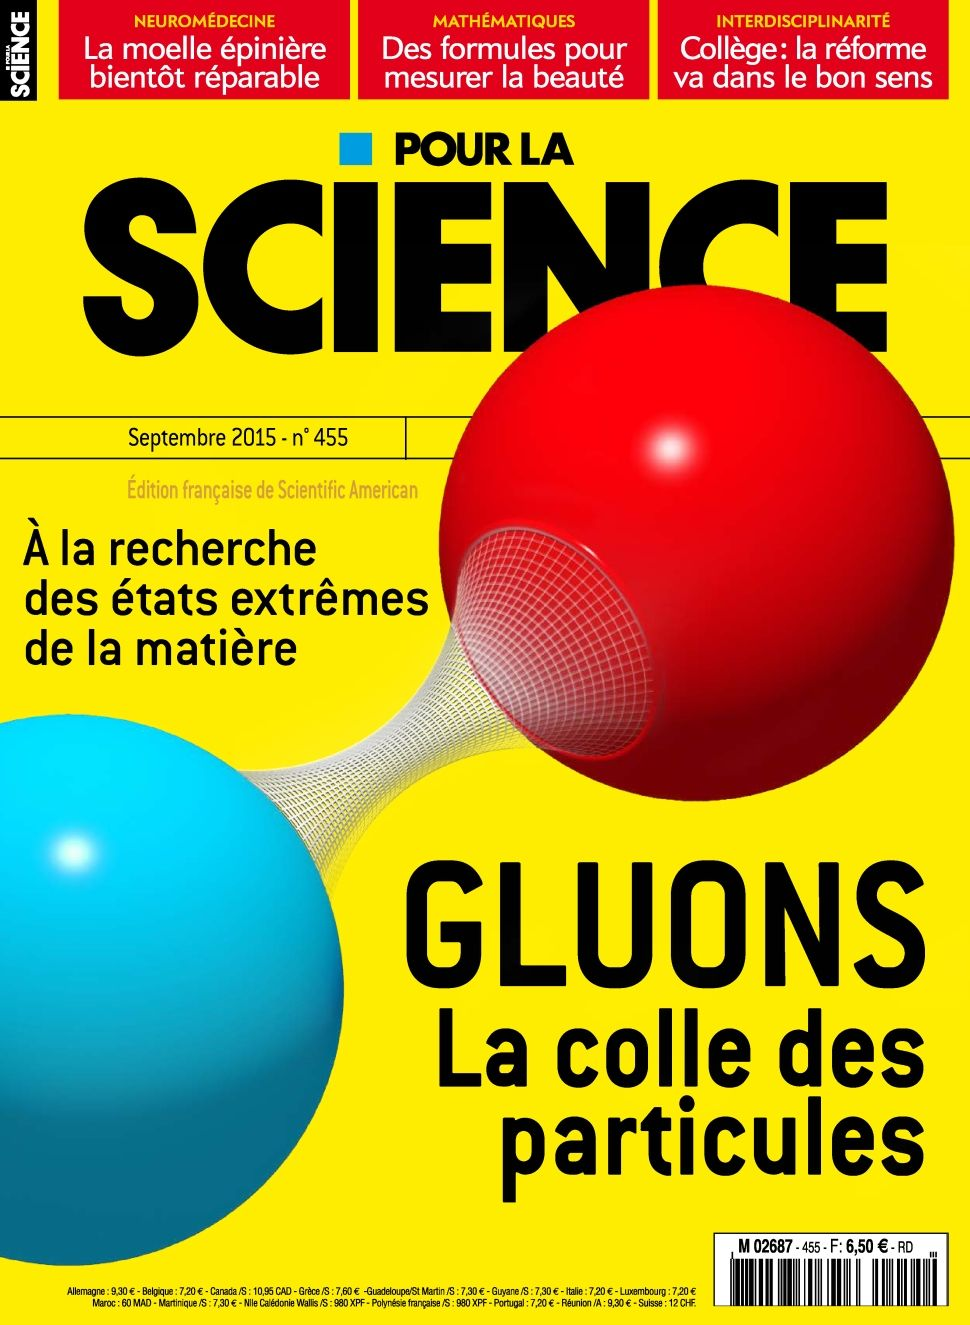 Pour la Science 455 - Septembre 2015